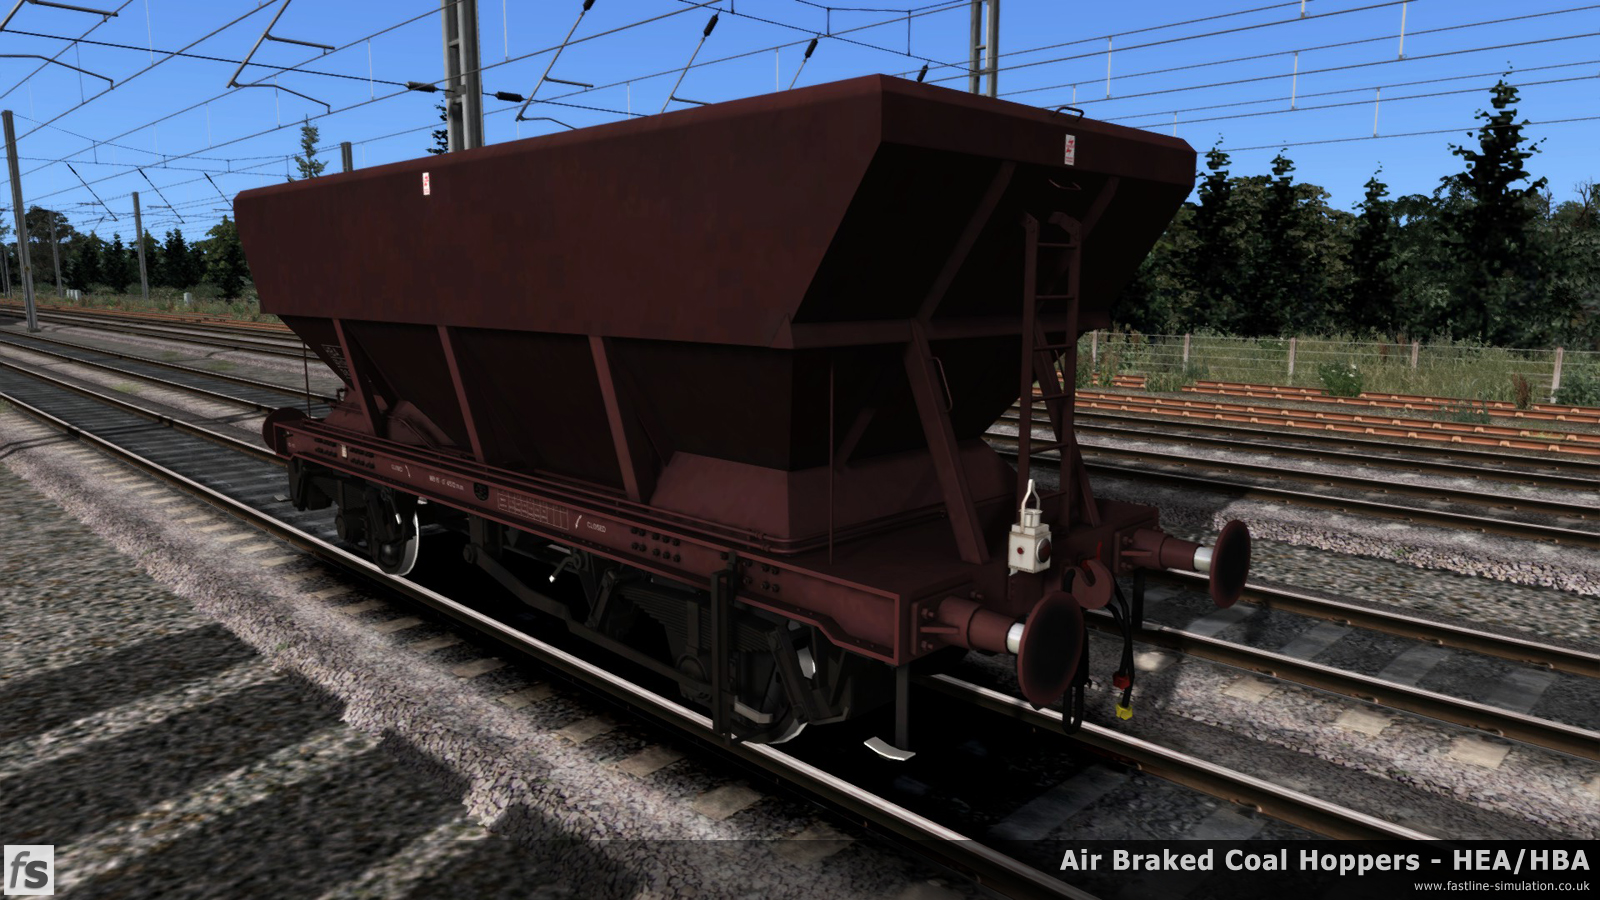 Fastline Simulation - HBA/HEA Coal Hoppers: An essentially complete screen shot of one of the earliest examples of an HBA hopper with a central ladder and long link suspension painted in all over maroon livery.